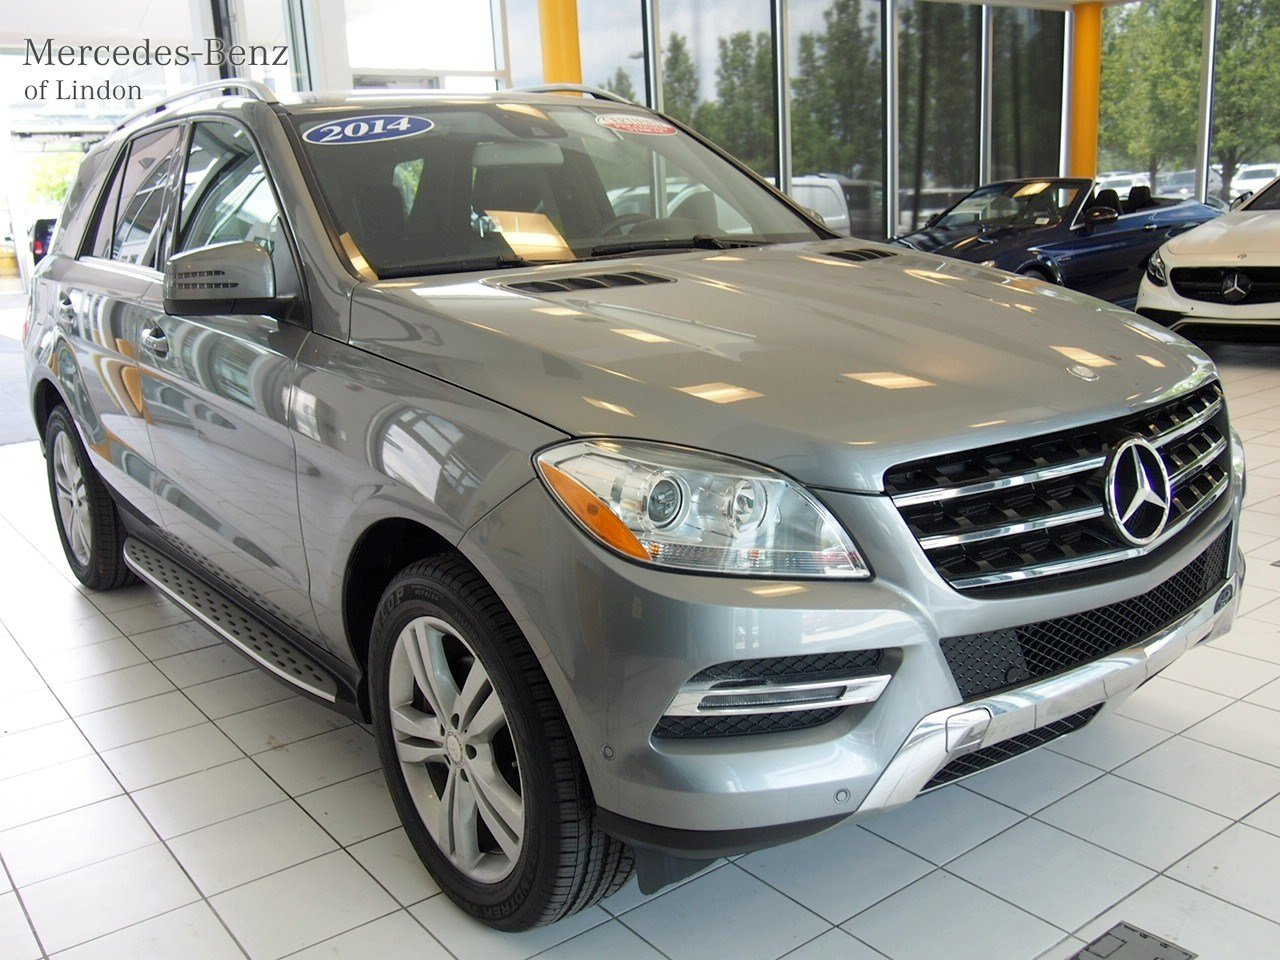 Pre owned 2014 mercedes benz m class ml 350 suv in lindon for Pre owned mercedes benz suv